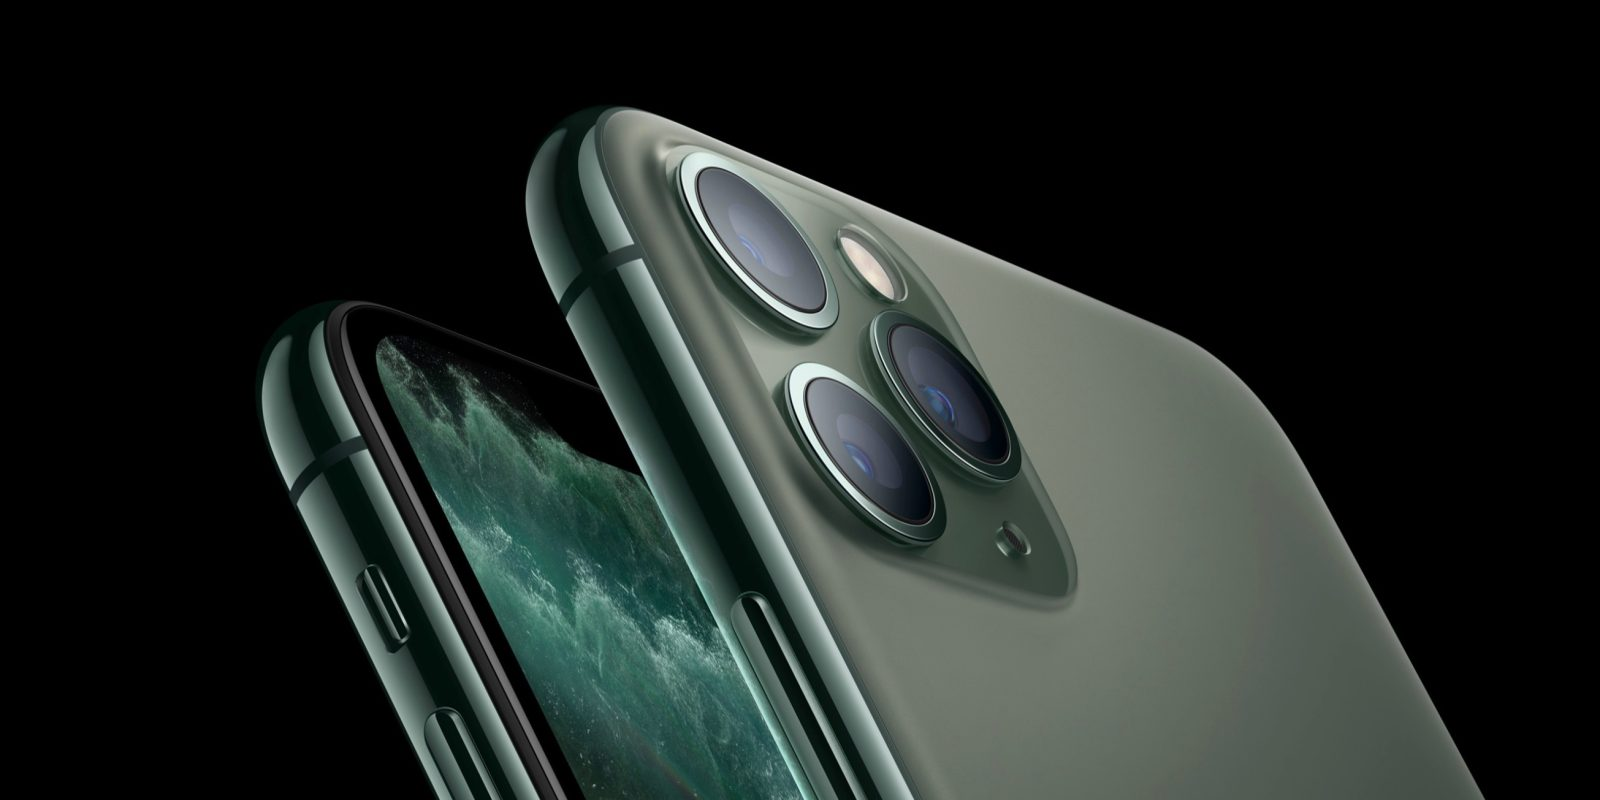 iPhone 11 Pro review roundup: massive jump in camera quality, battery life claims deliver